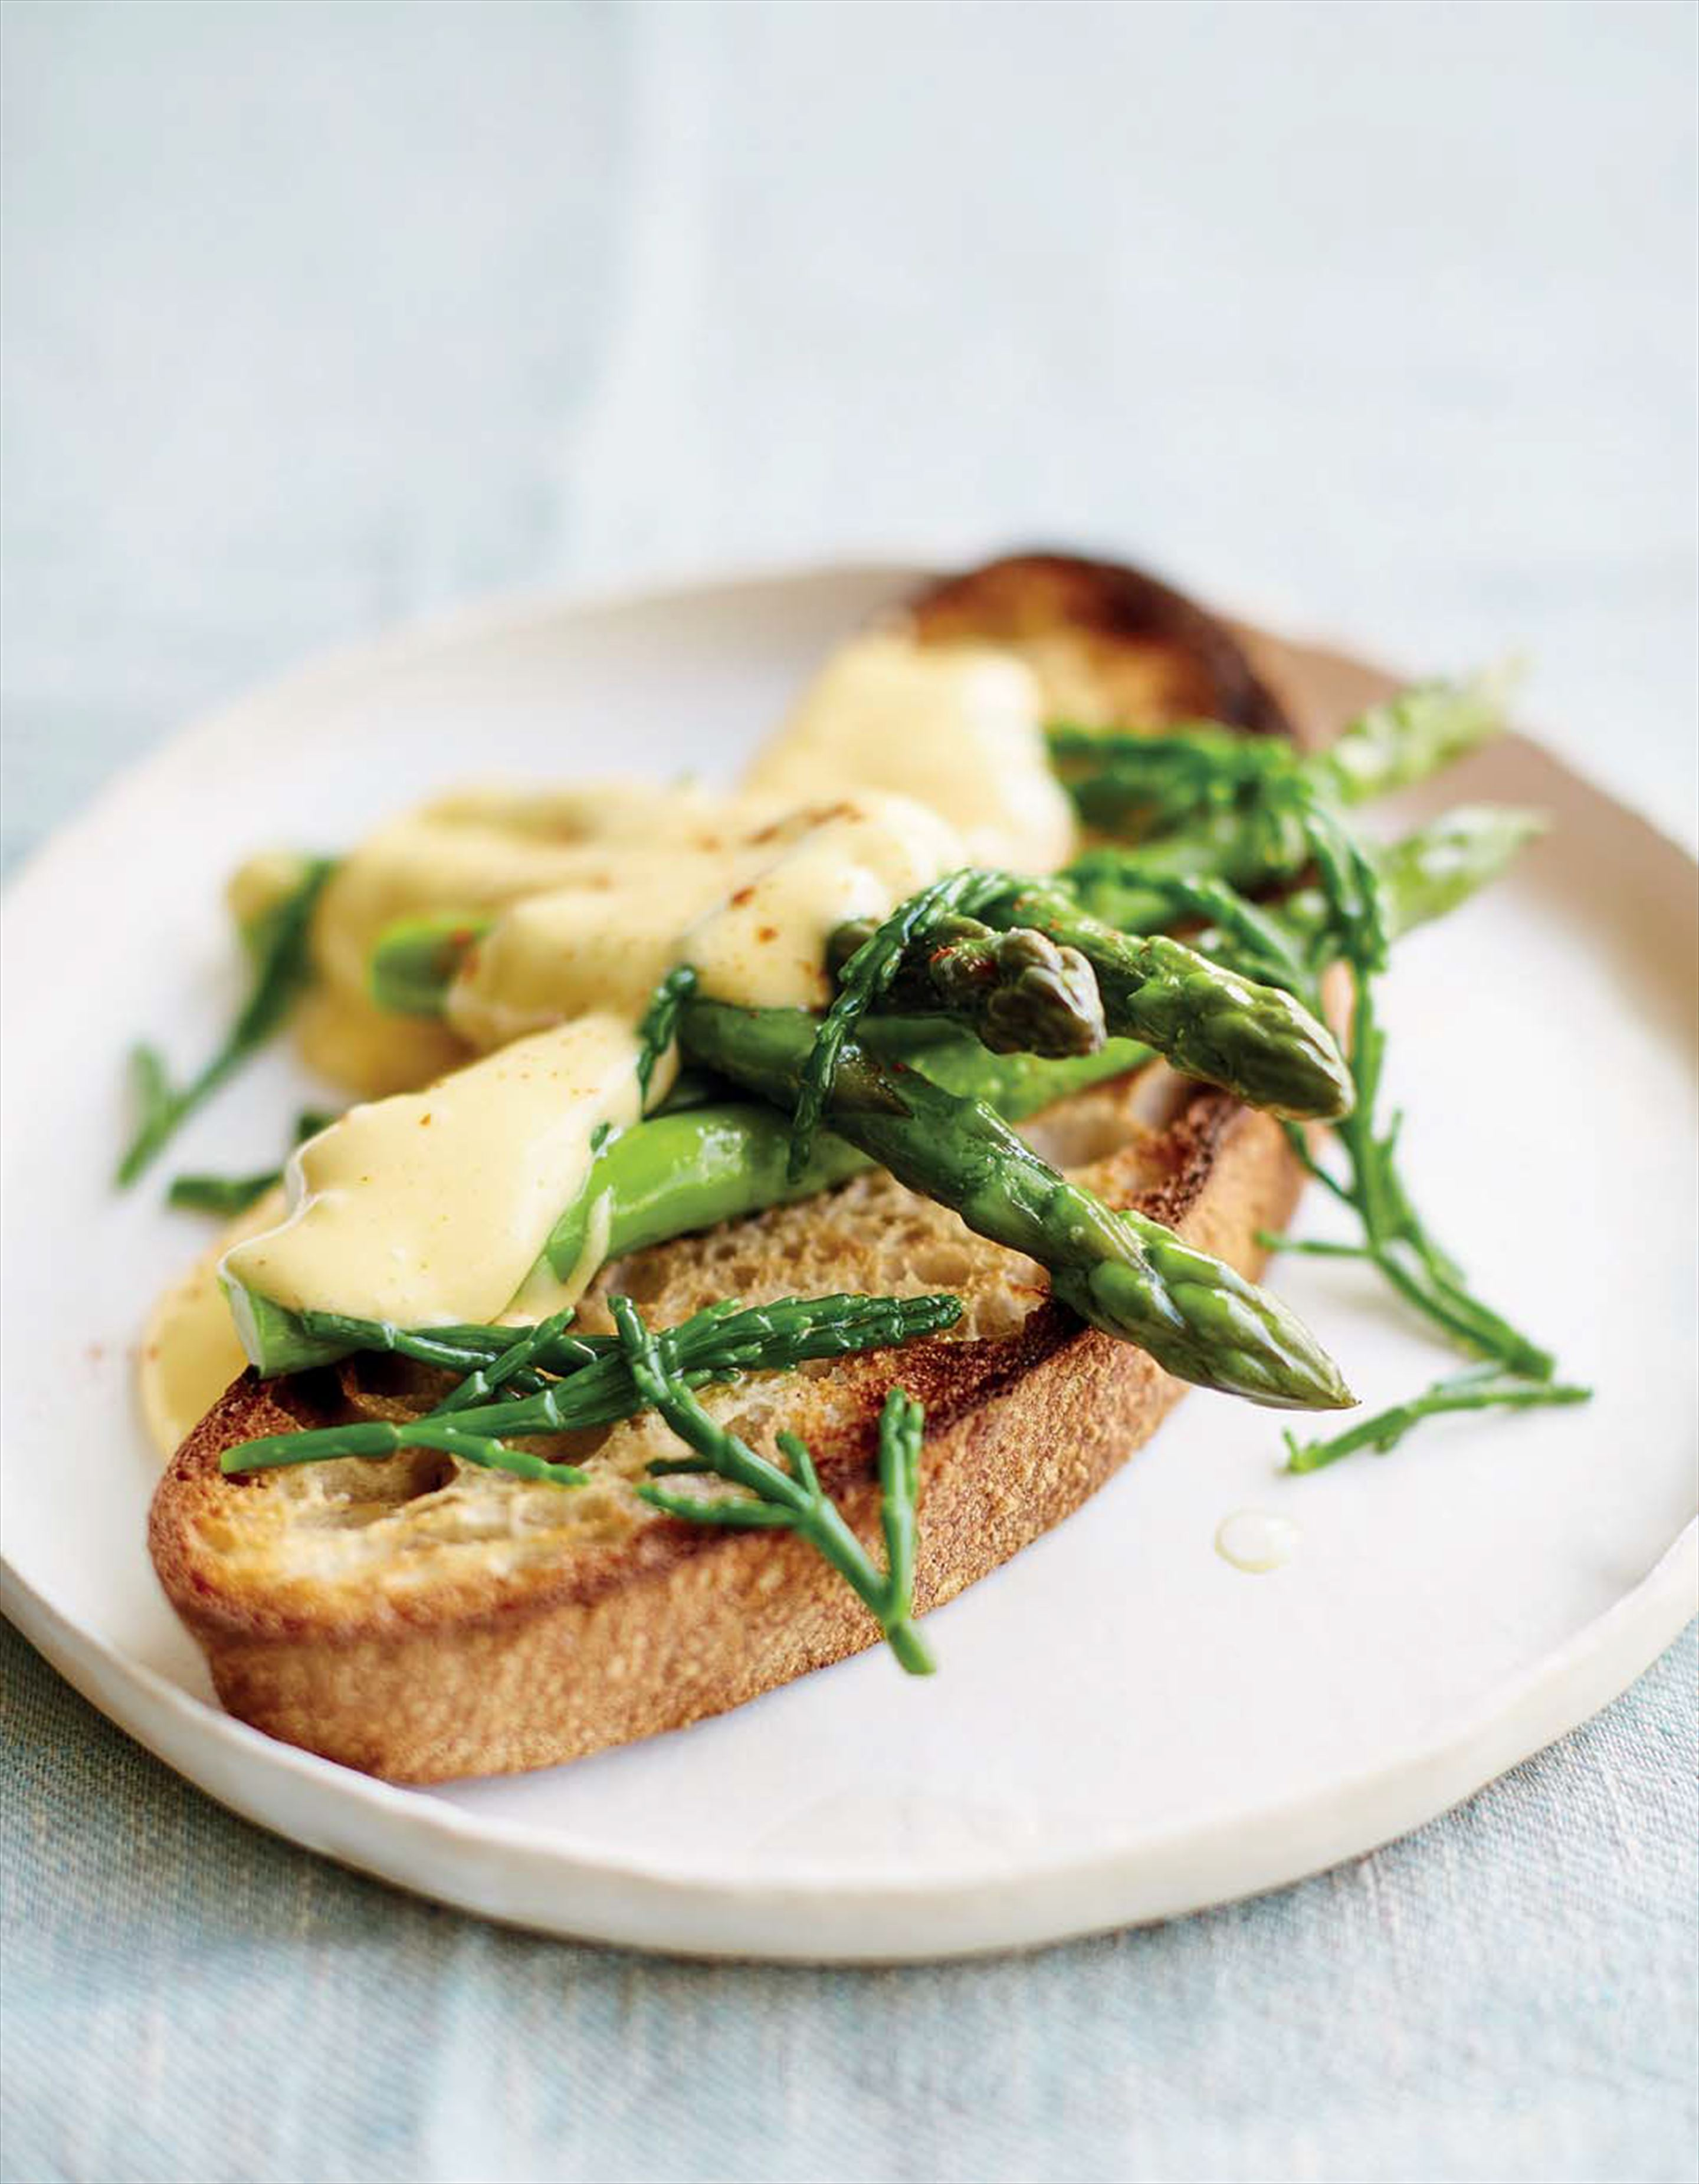 Asparagus and samphire on toast with hollandaise sauce